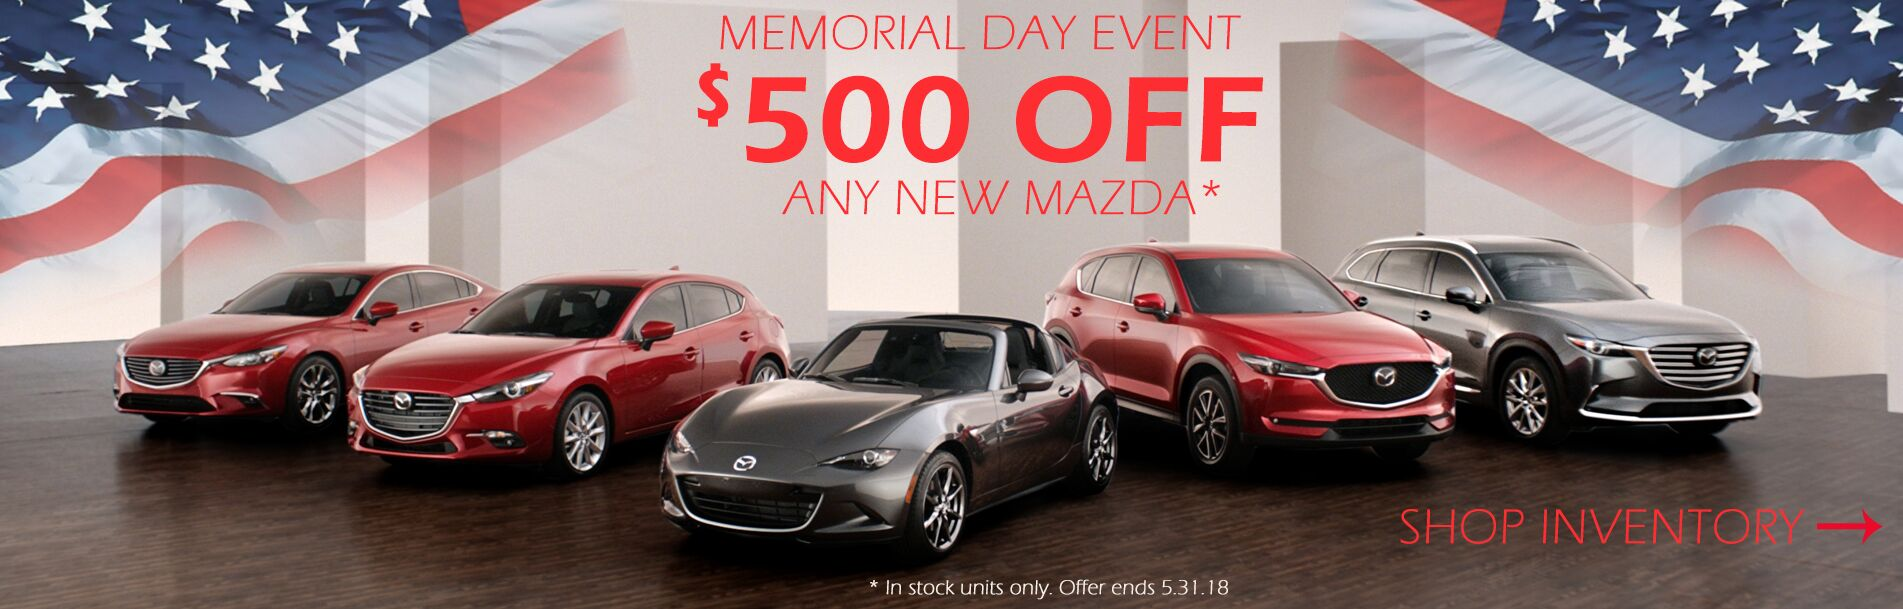 Memorial Day Event at Rochester Mazda